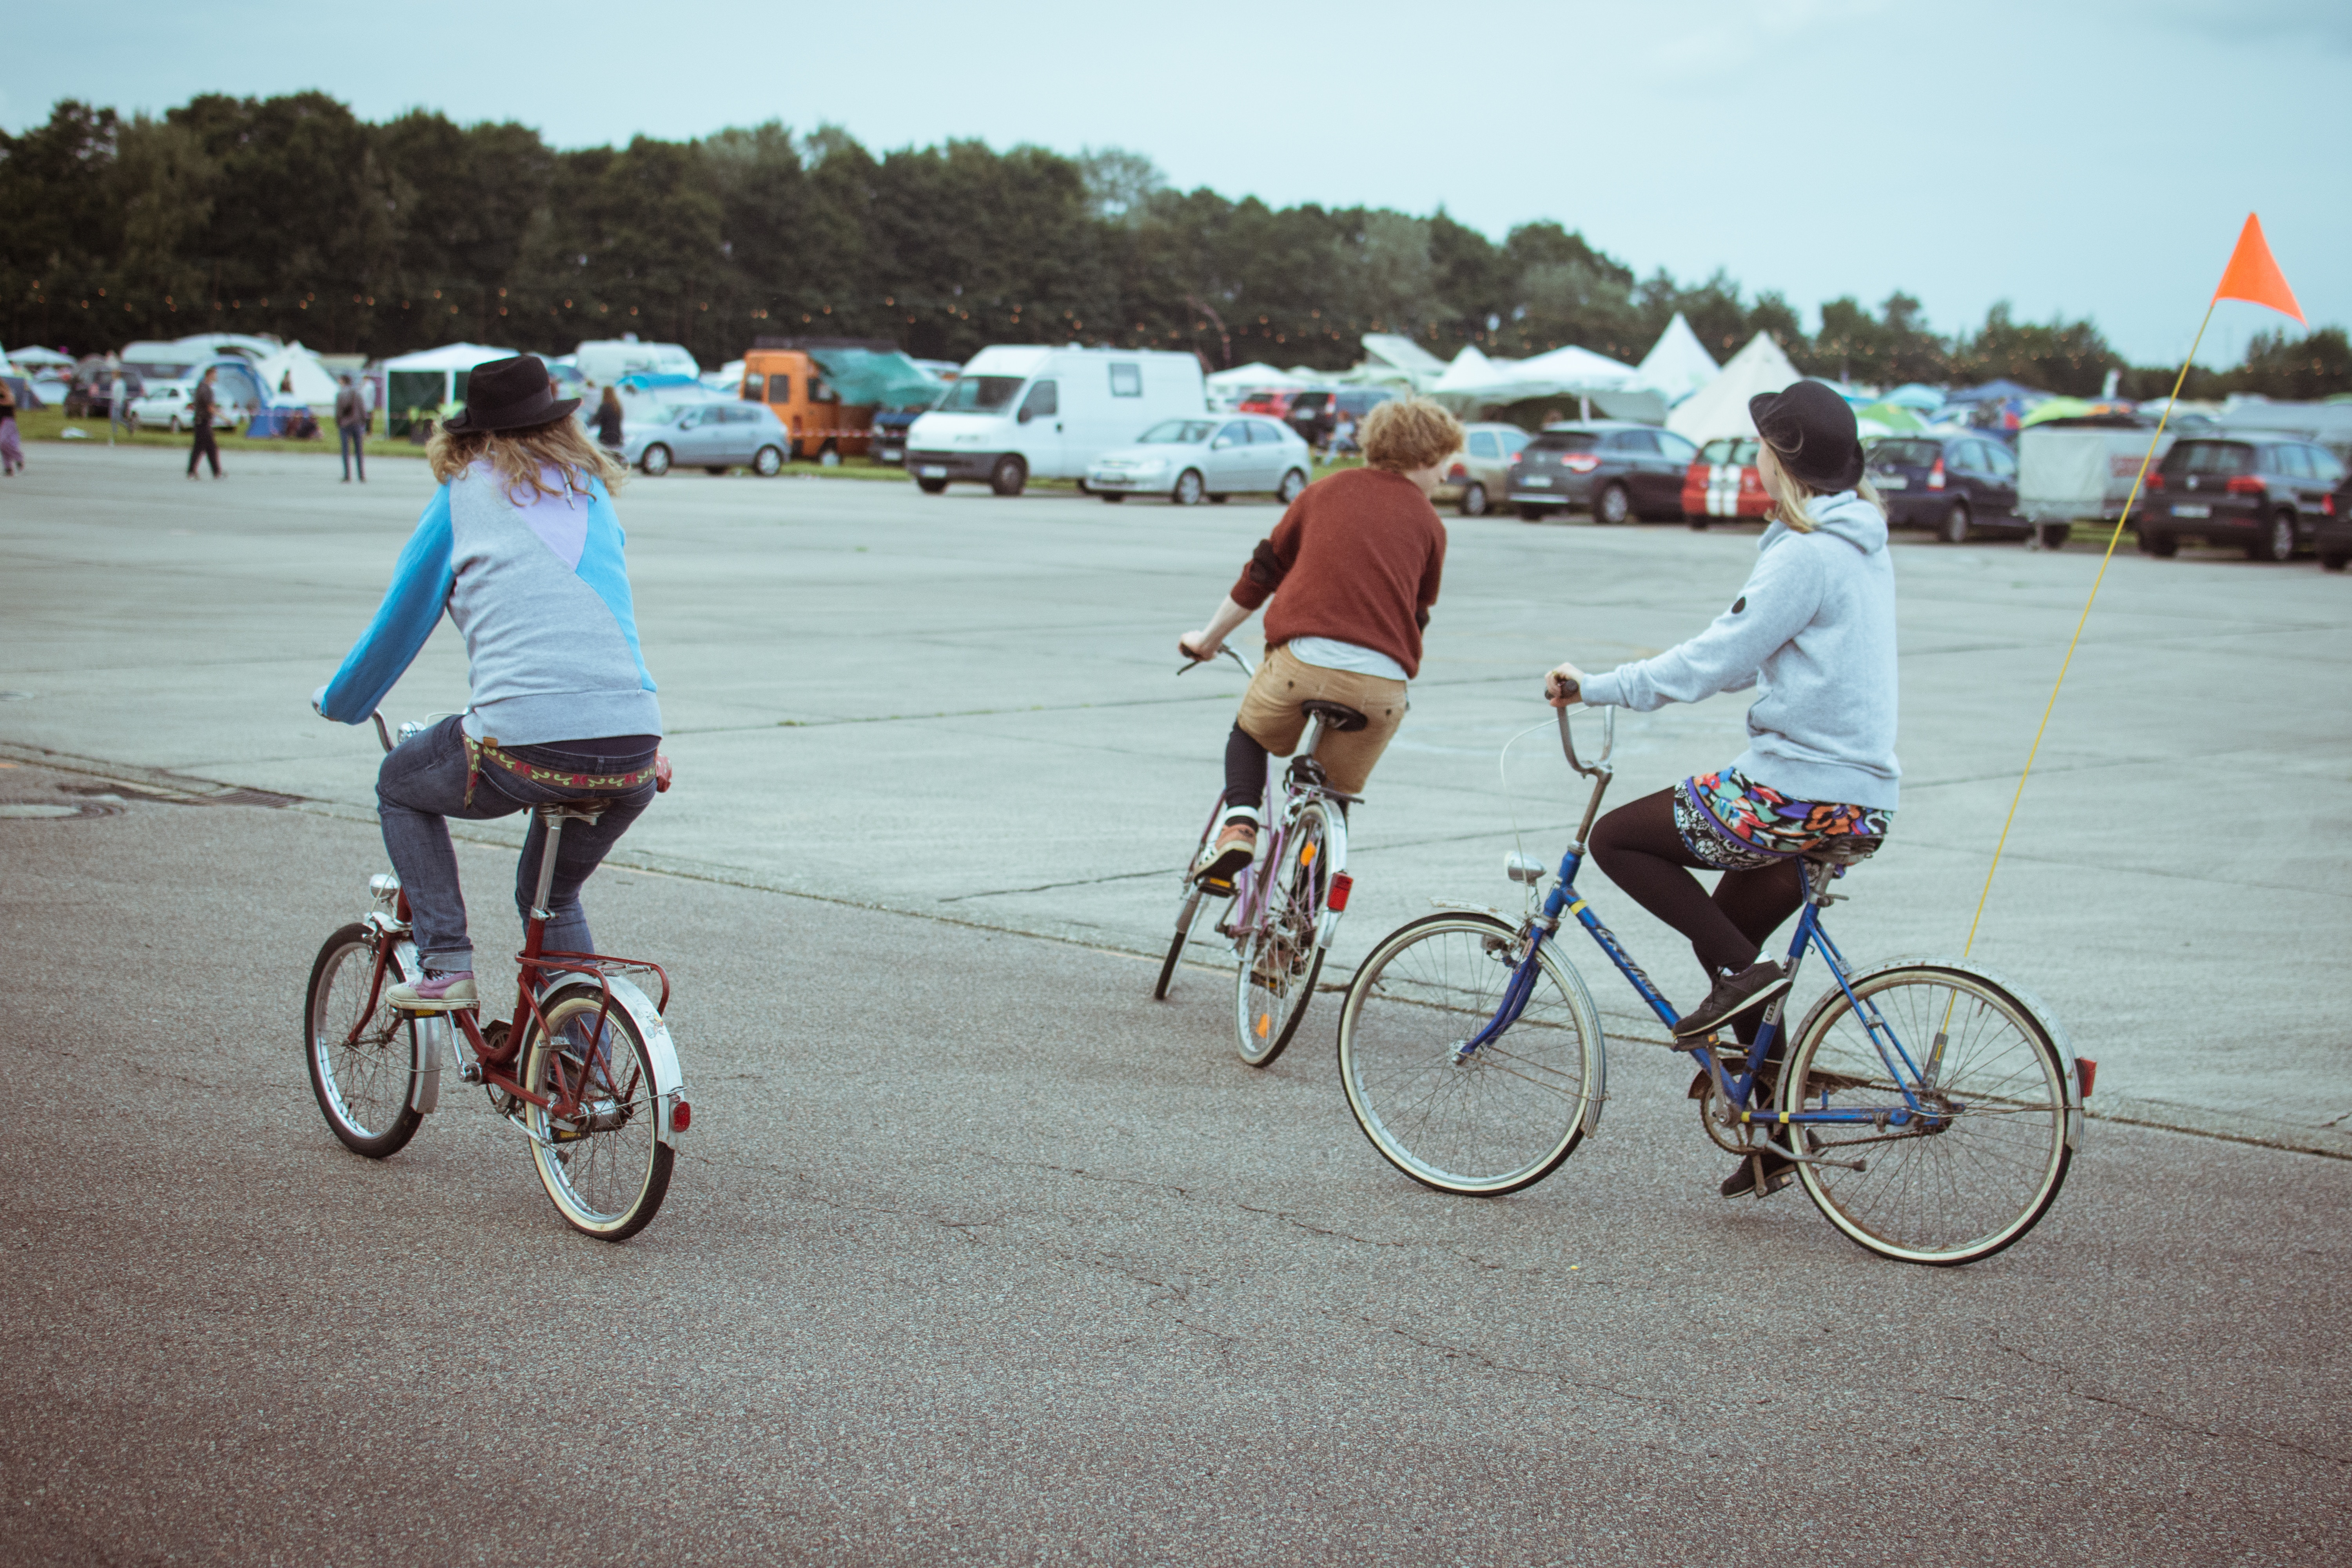 image of 3 people cycling